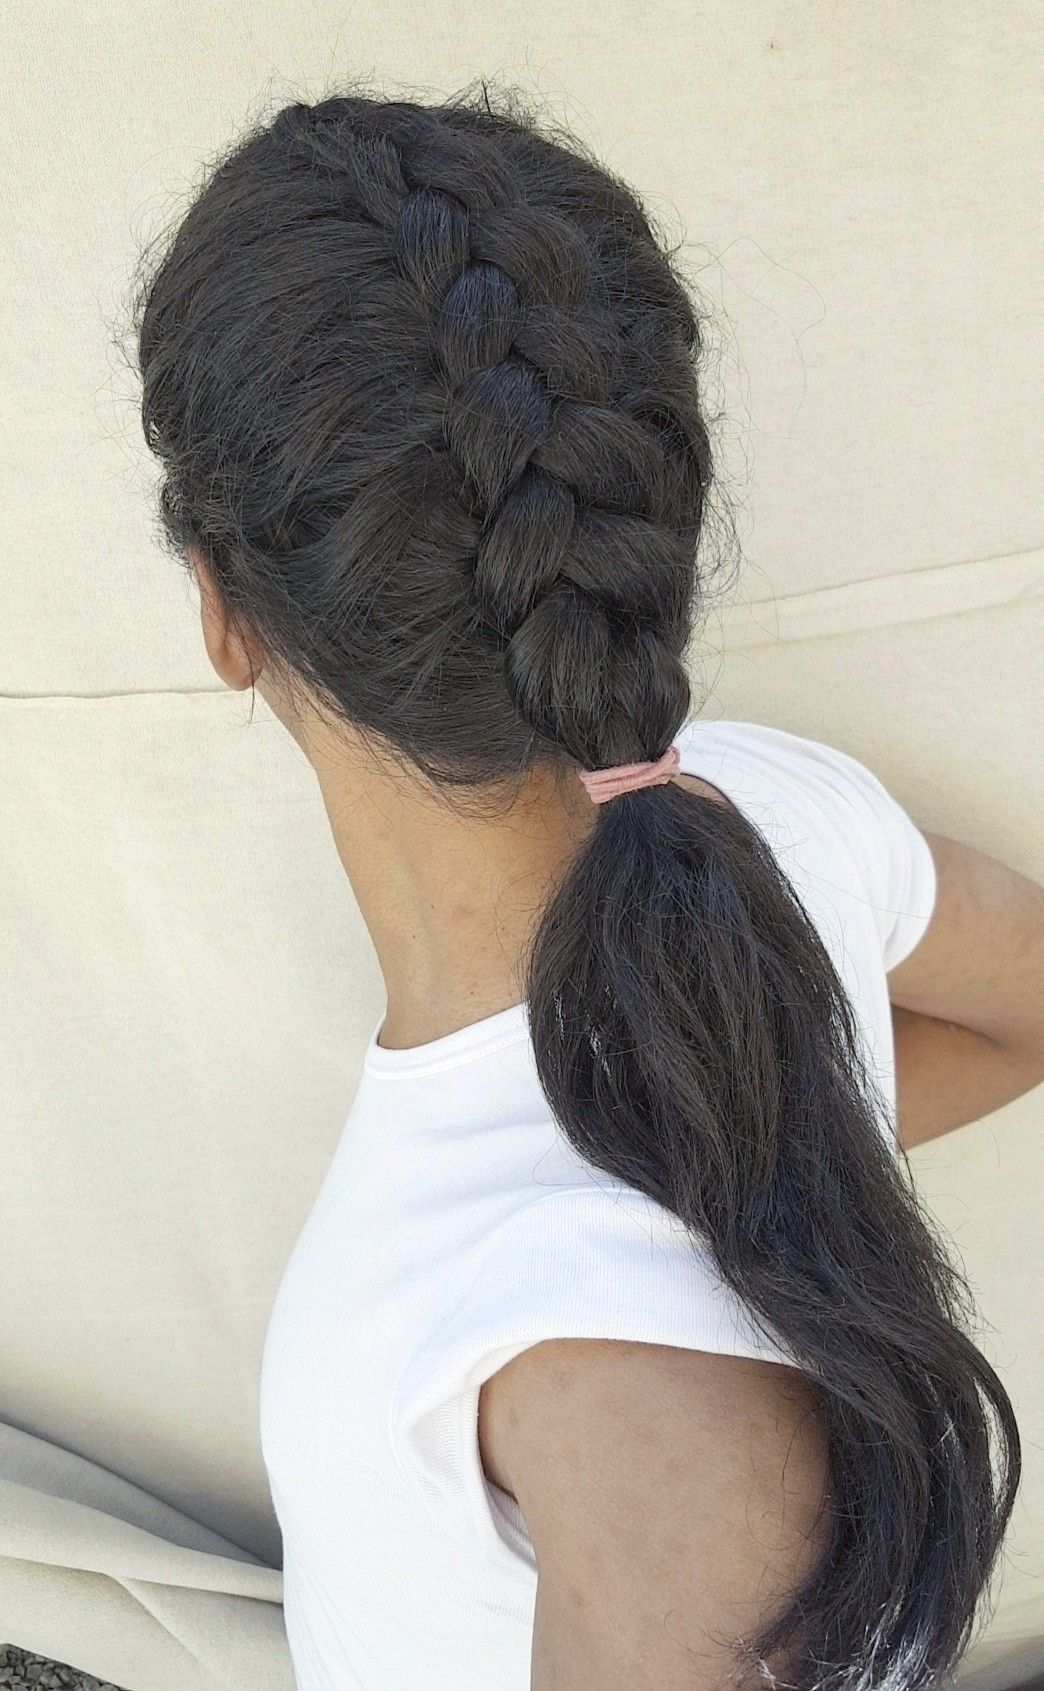 Half Braids With Low Ponytail Ponytail Hairstyle Braided Hair Hair Style Stylish Longhair Nice Hairstyl Hair Styles Cool Hairstyles Braided Hairstyles